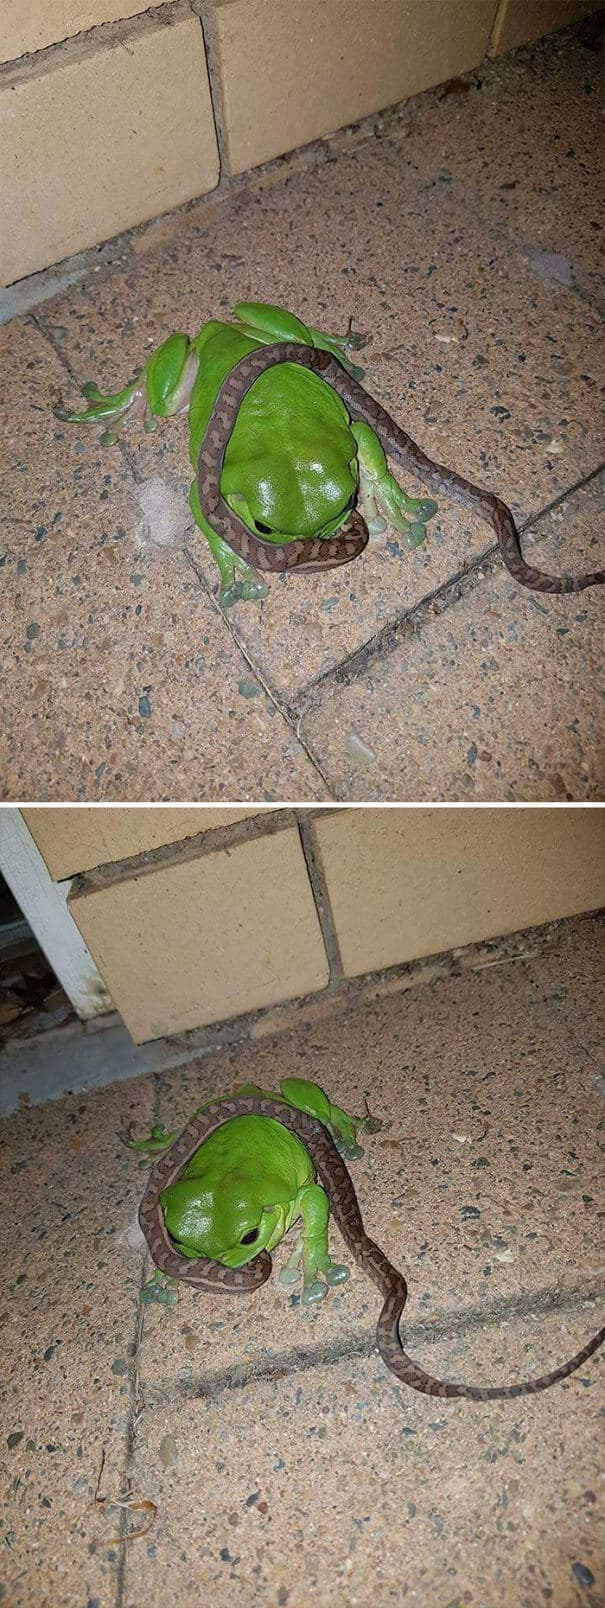 Are you thinking can frogs eat snakes? This image proves frogs eat snake.